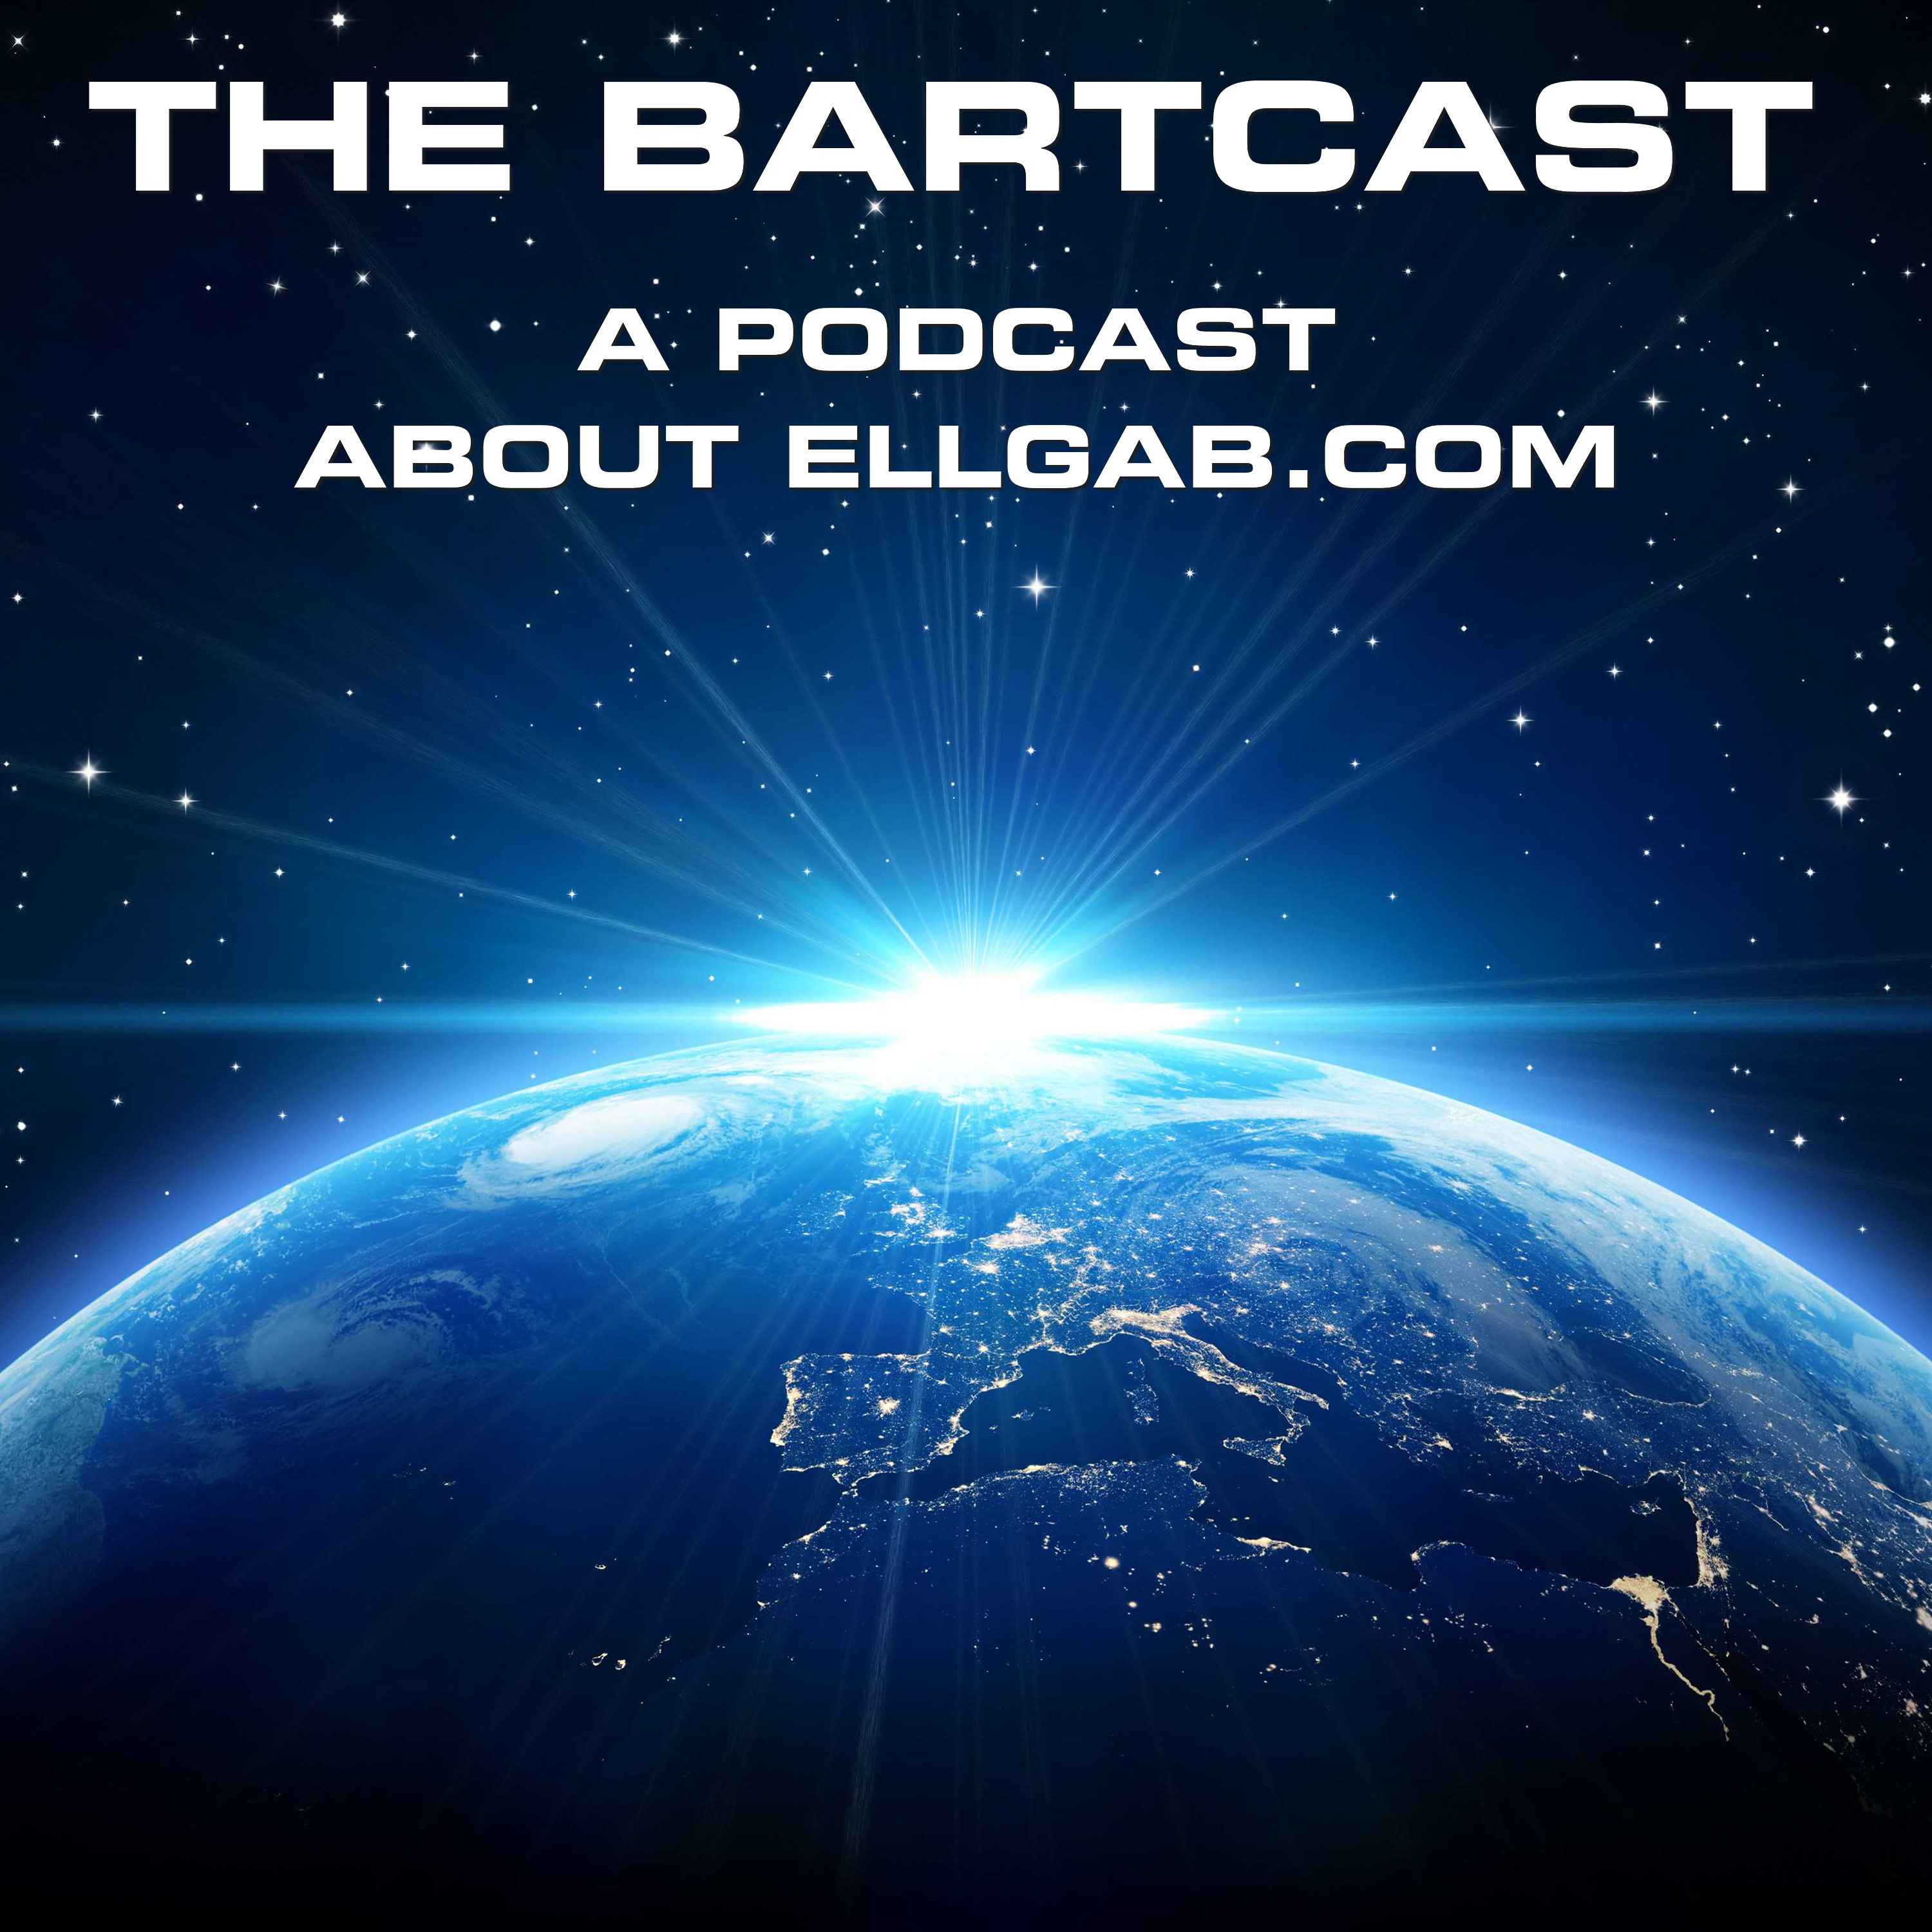 The Bartcast